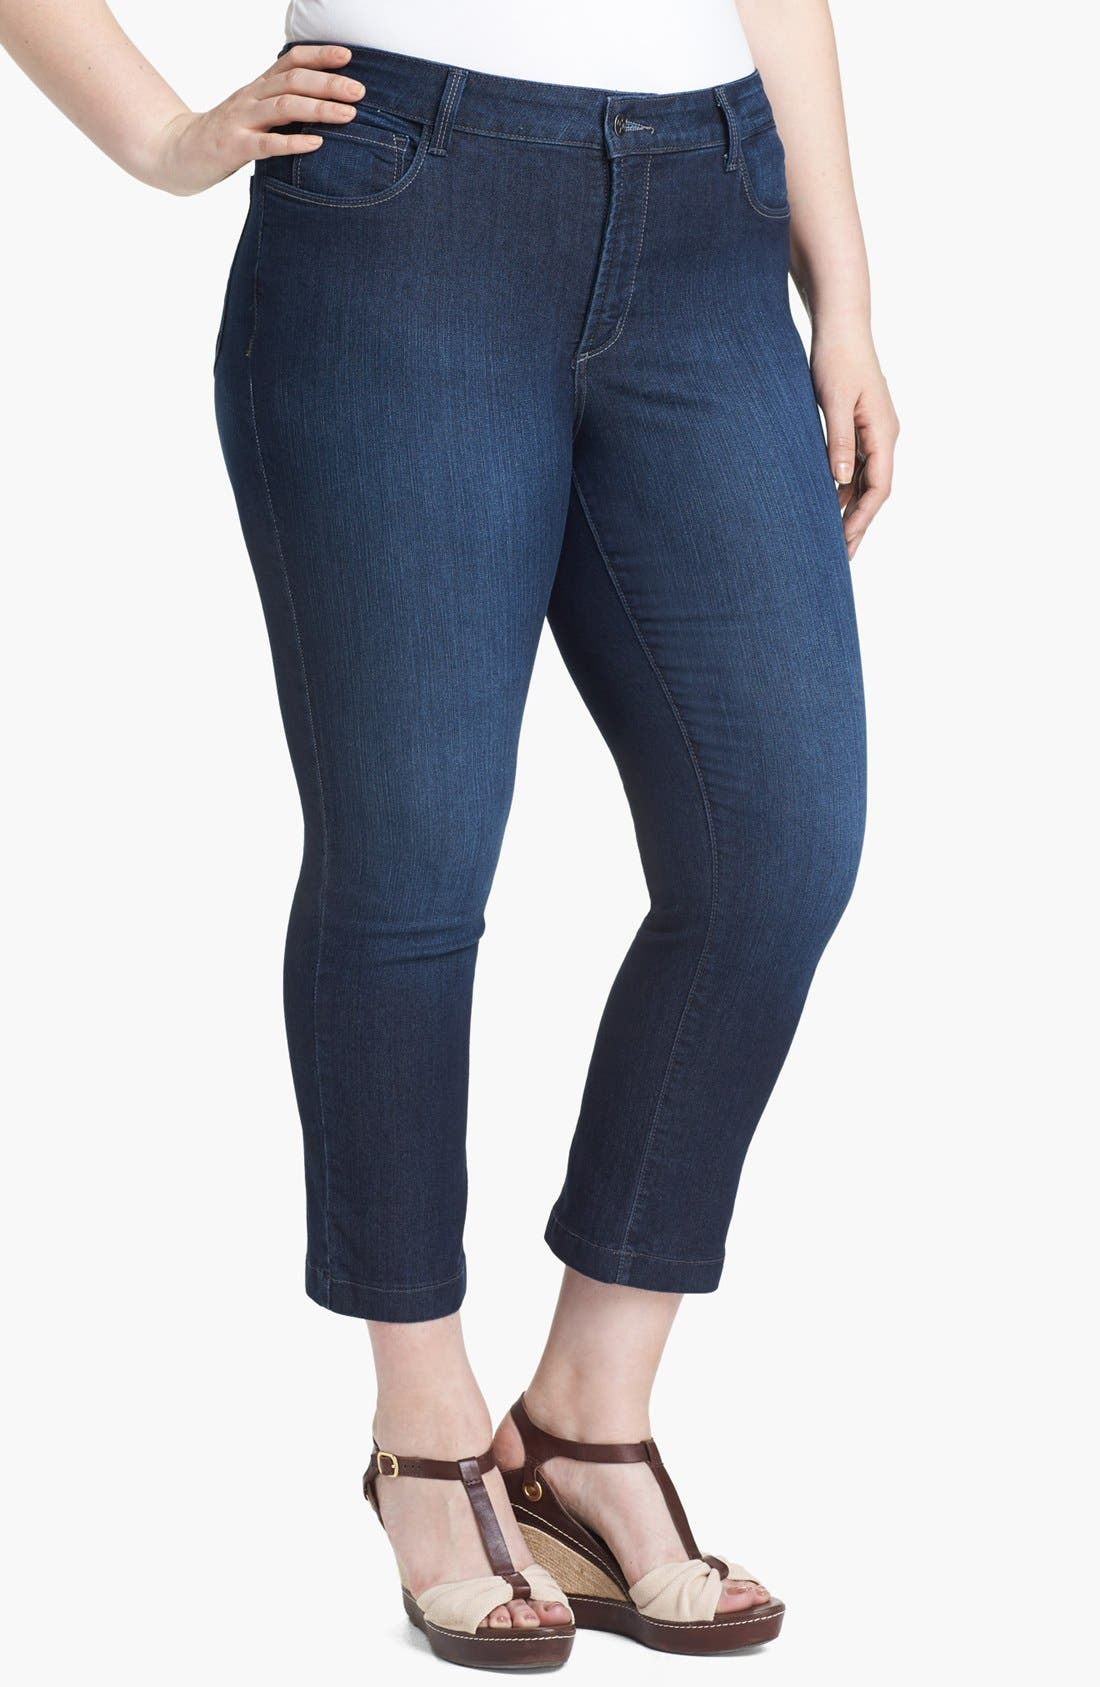 Alternate Image 1 Selected - NYDJ 'Audrey' Skinny Ankle Jeans (Plus Size)